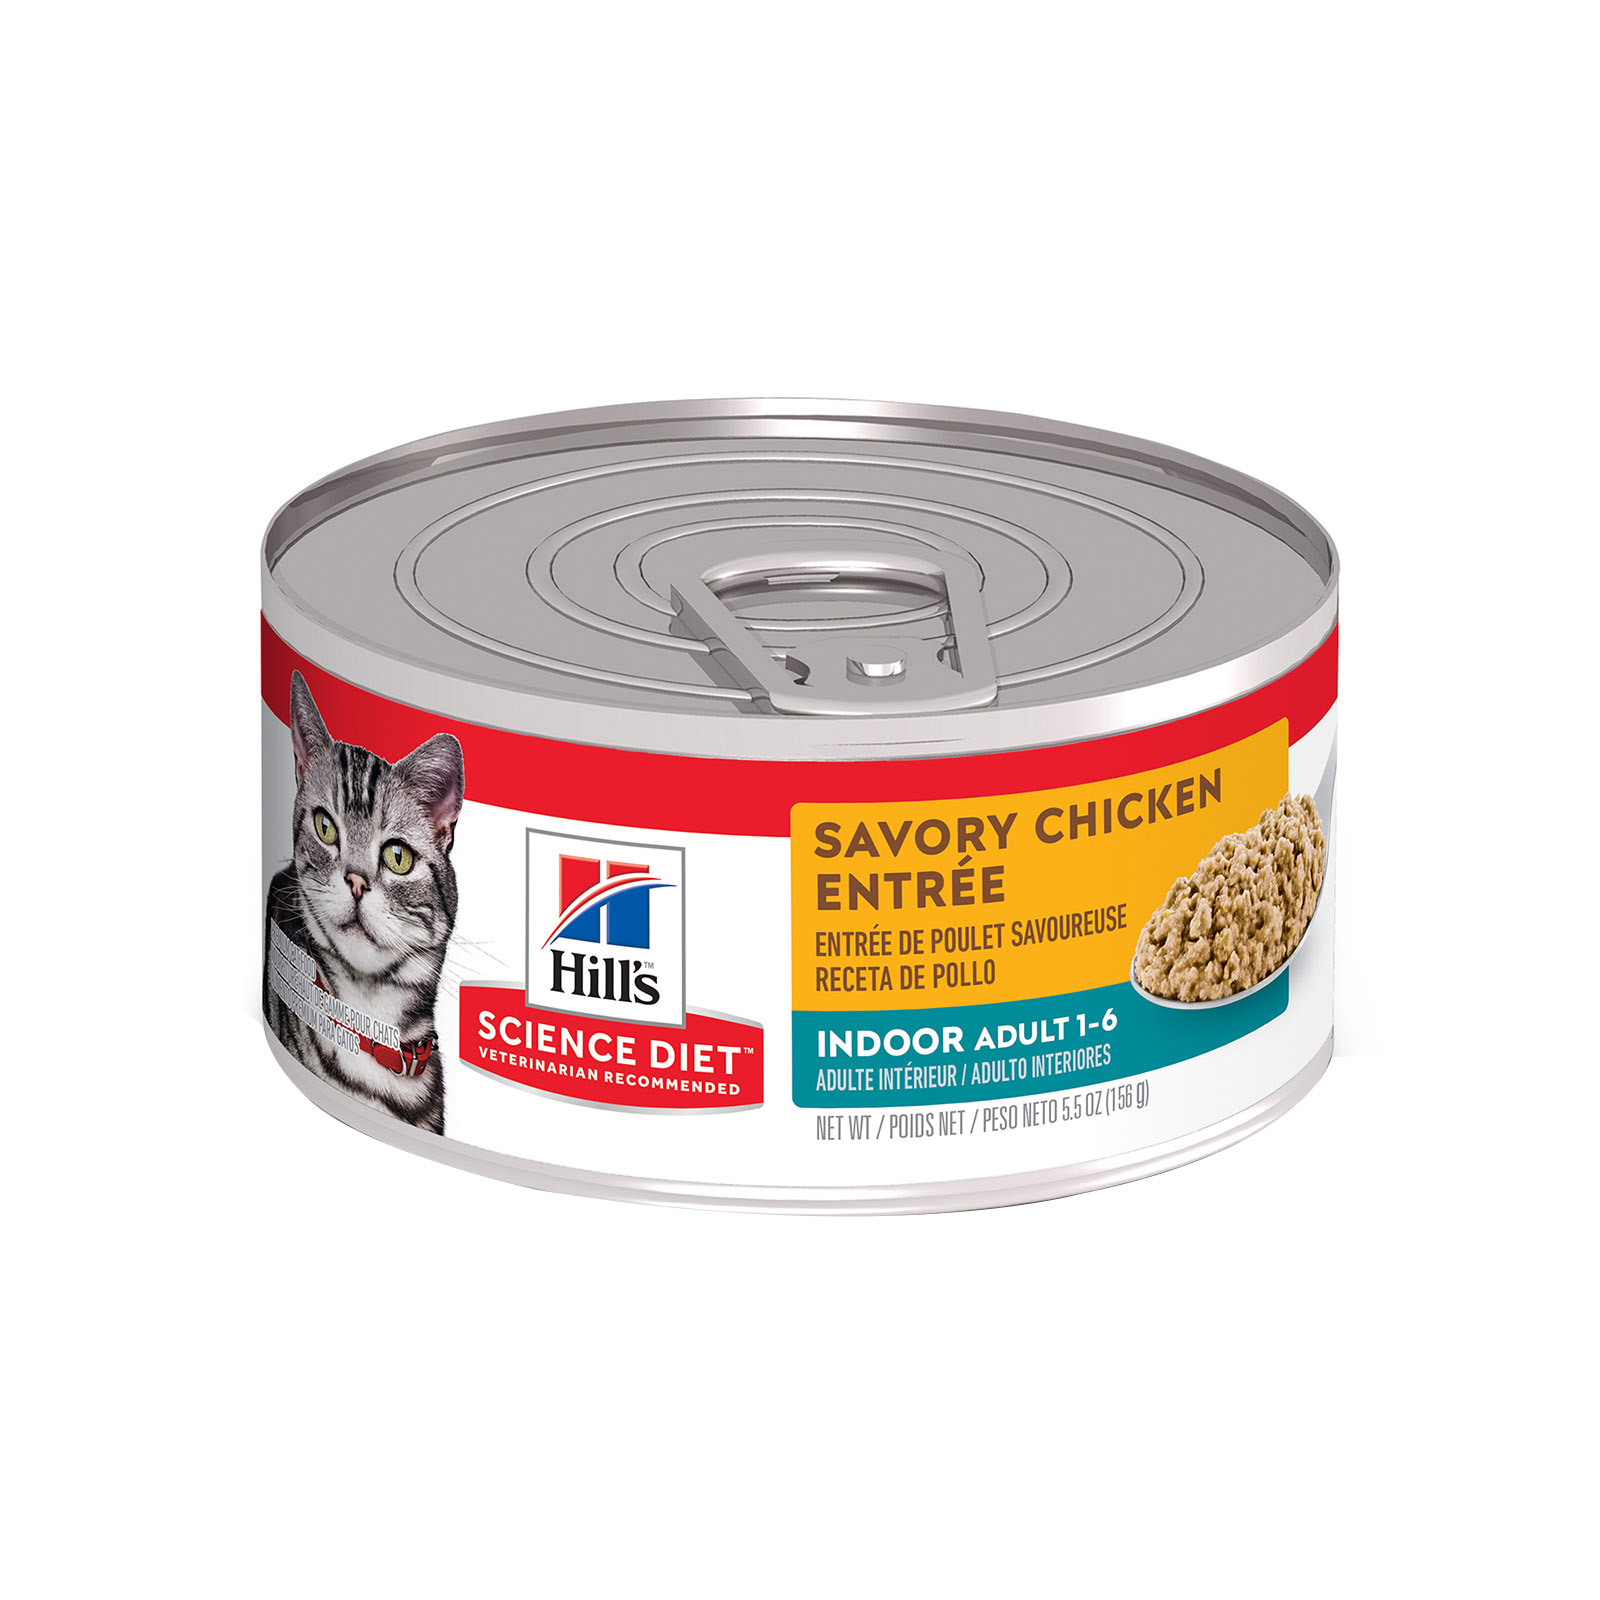 Hill's Science Diet Adult Indoor Savory Chicken Entrée Canned Wet Cat Food